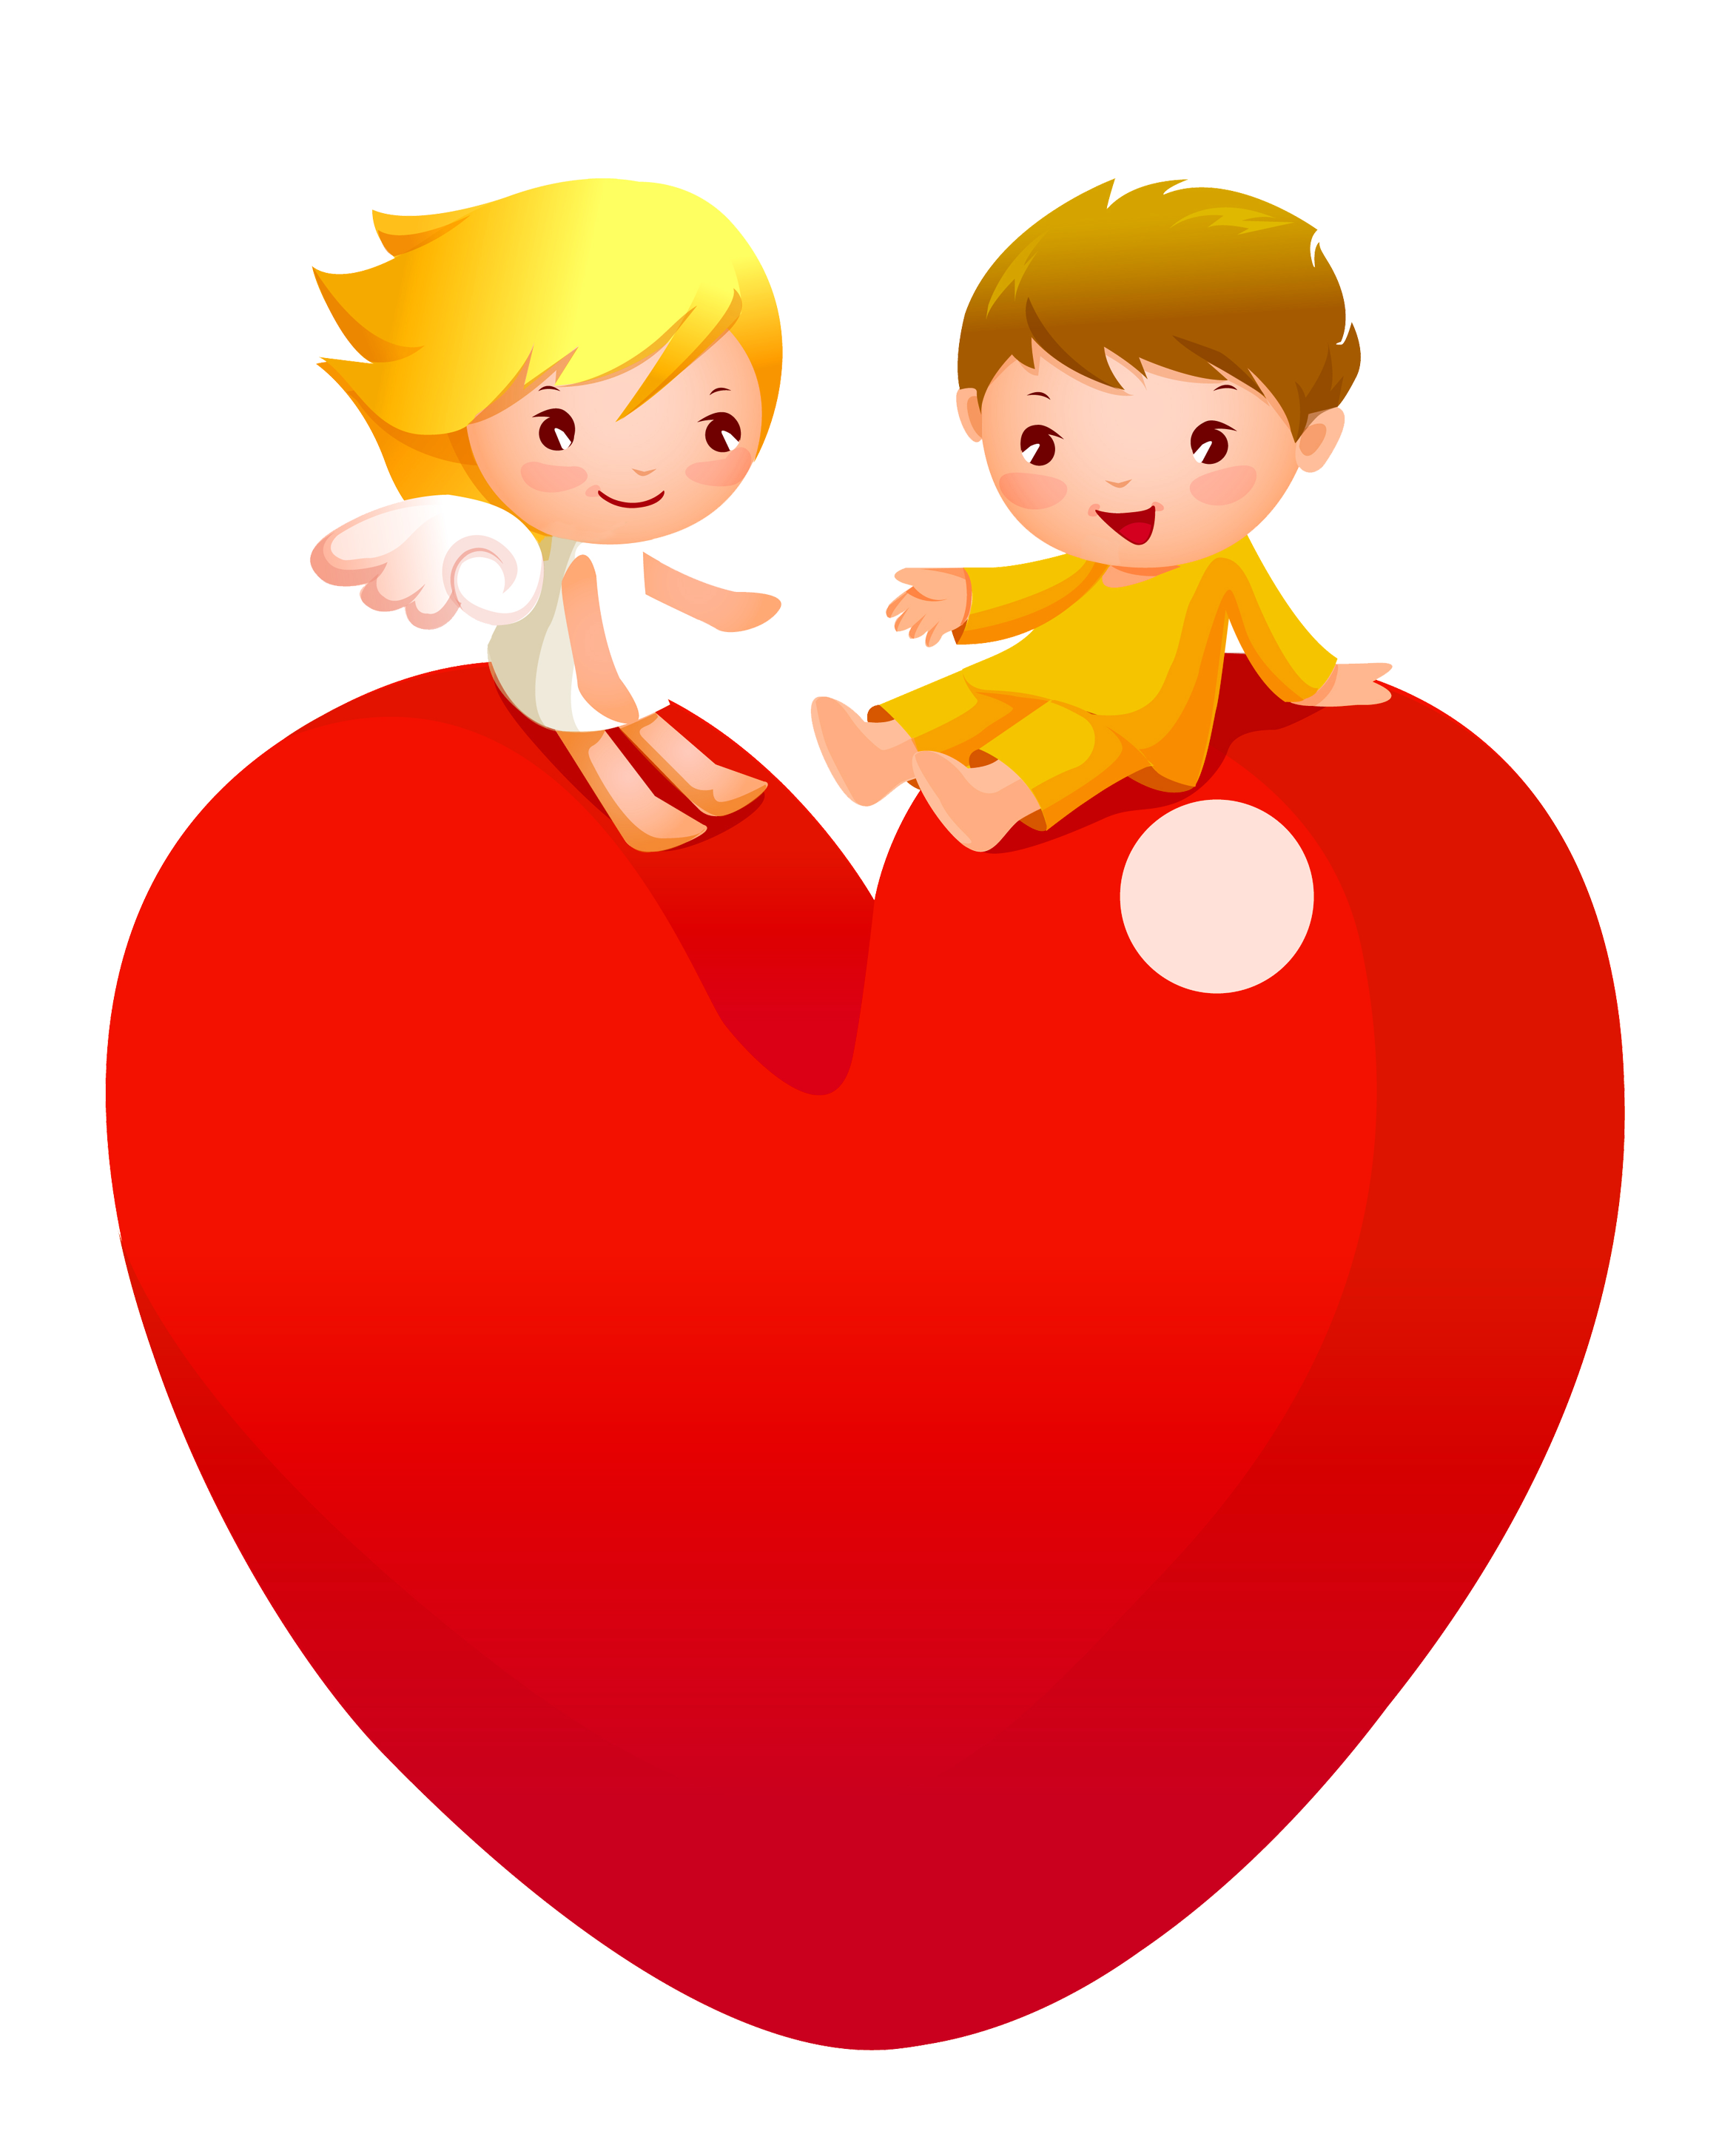 Shapes clipart name. Red heart with angels